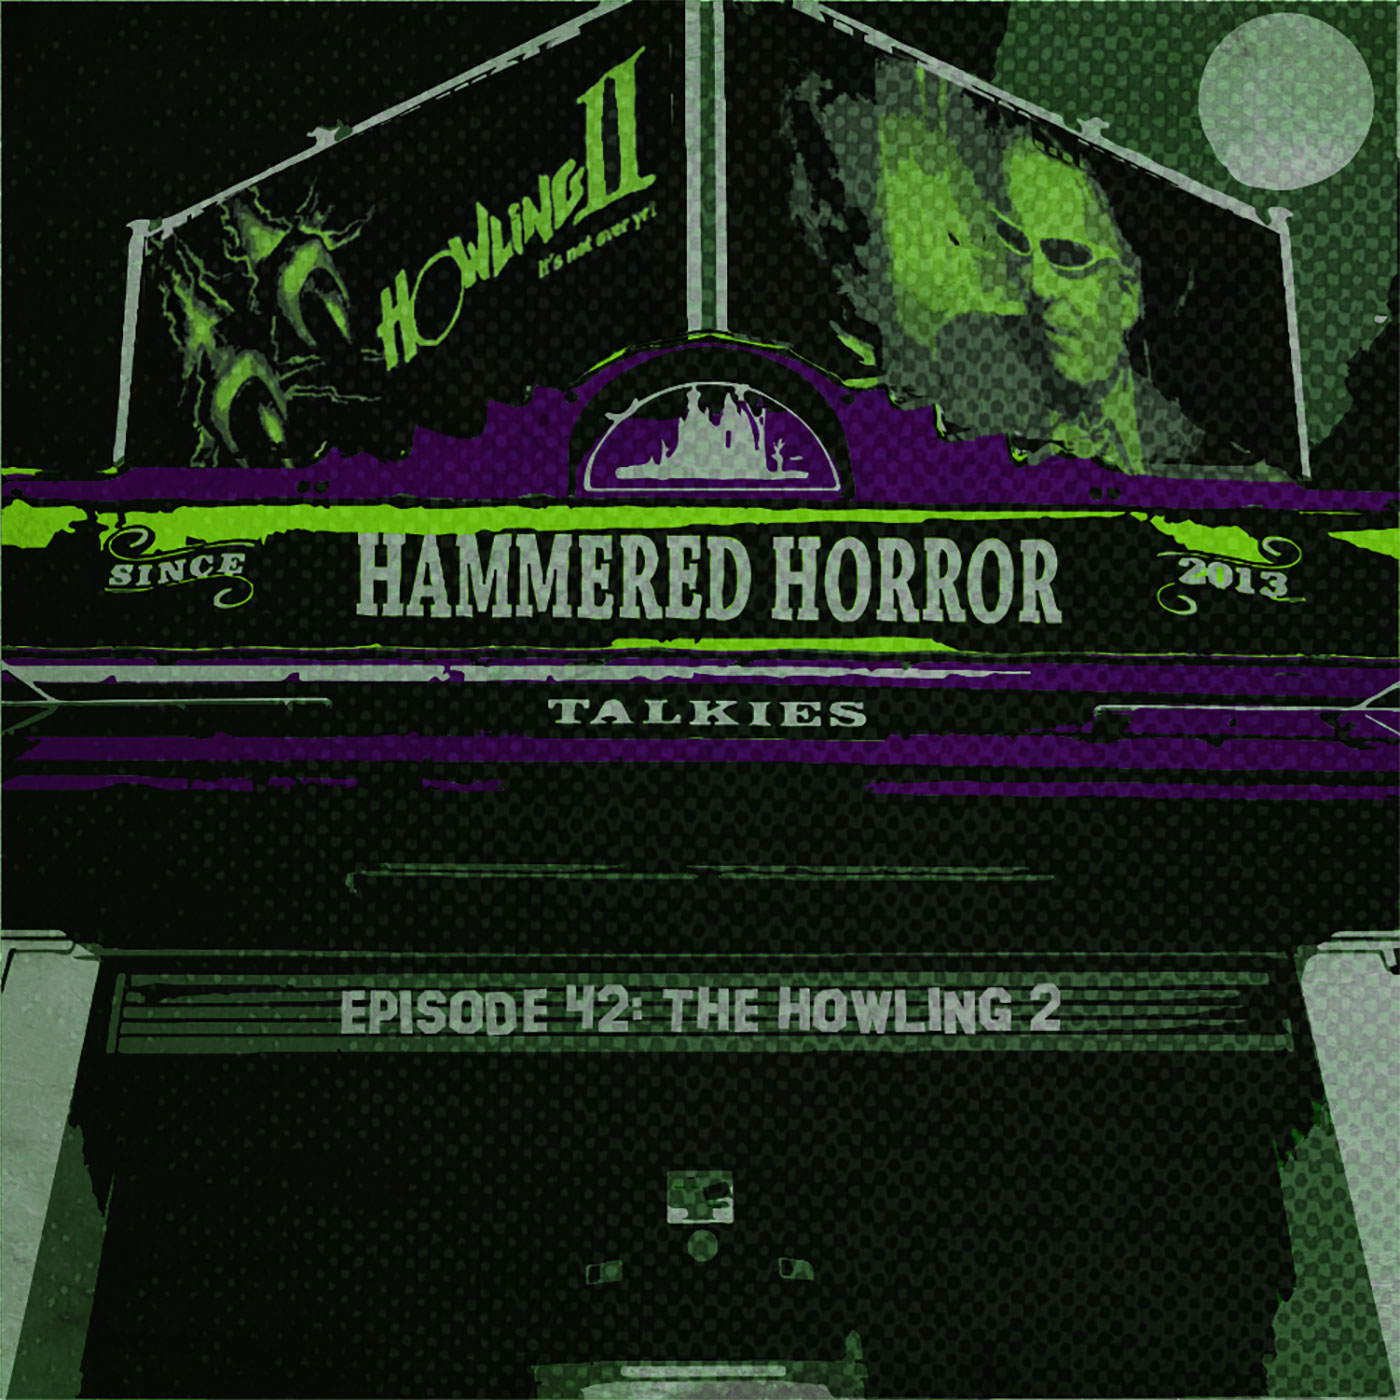 Hammered Horror 42: The Howling 2